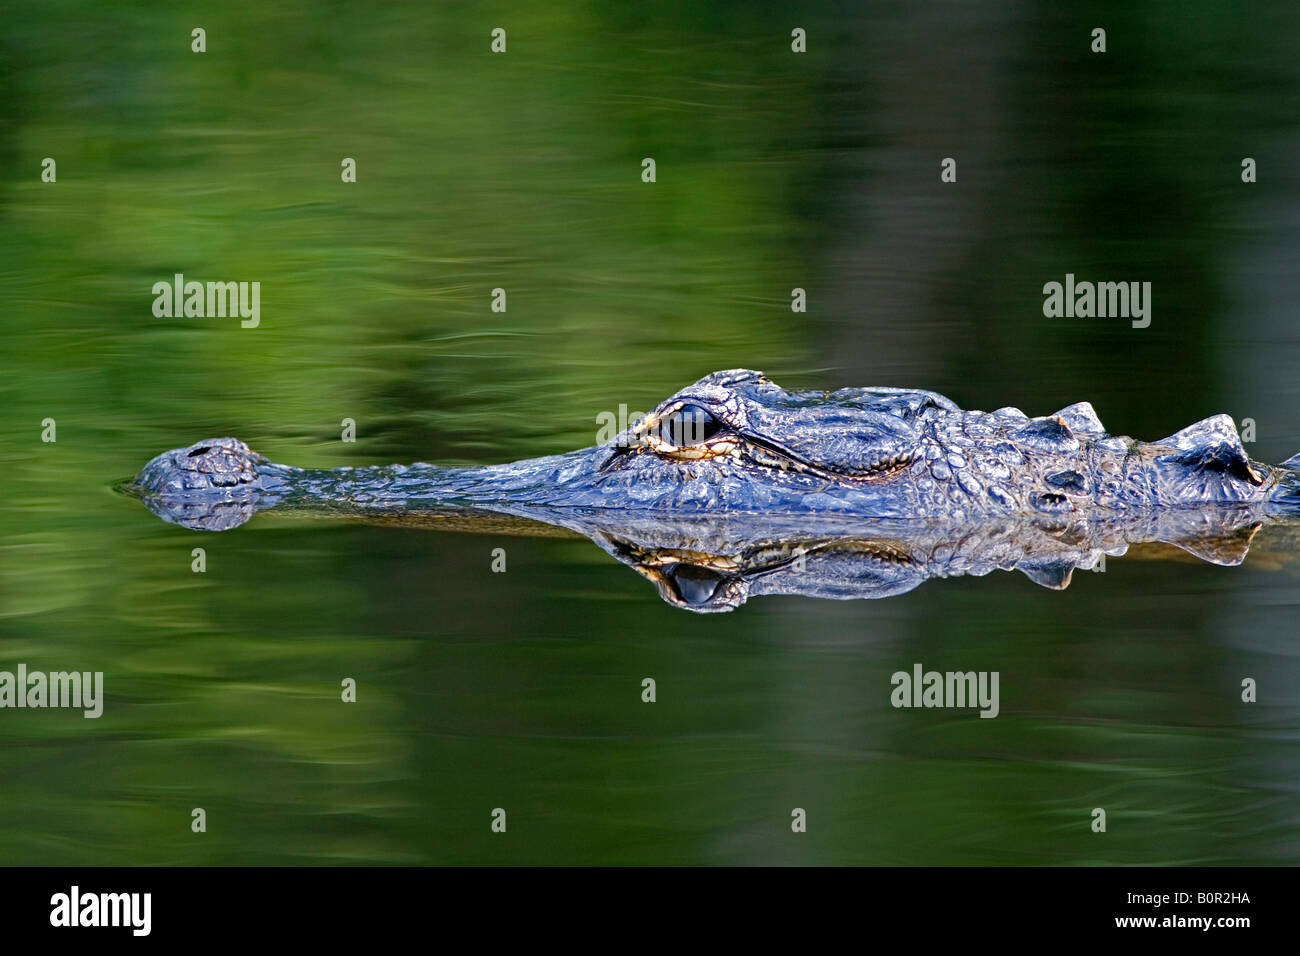 American Alligator in Everglades National Park Florida - Stock Image